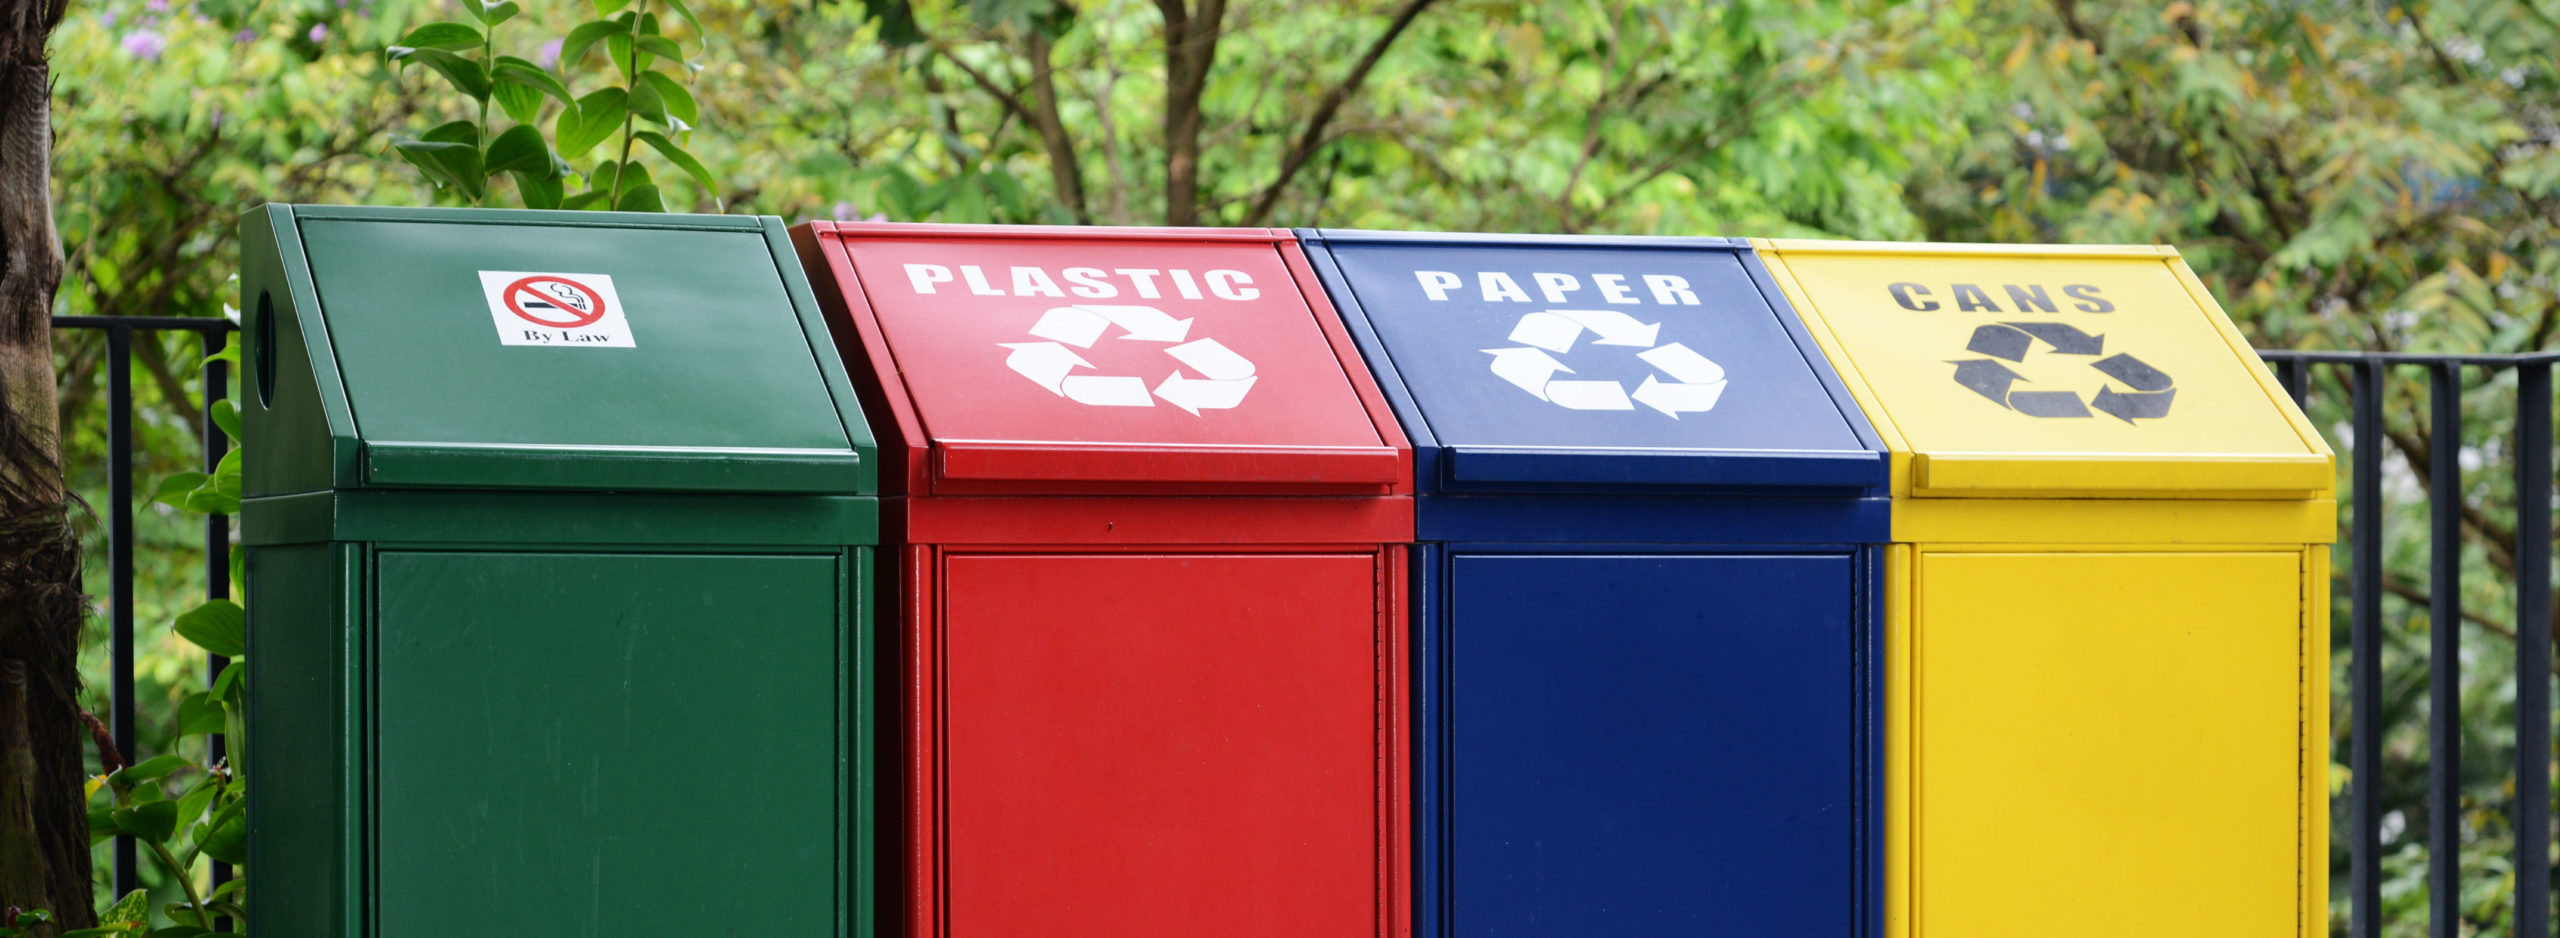 Why You Should Recycle Your Waste